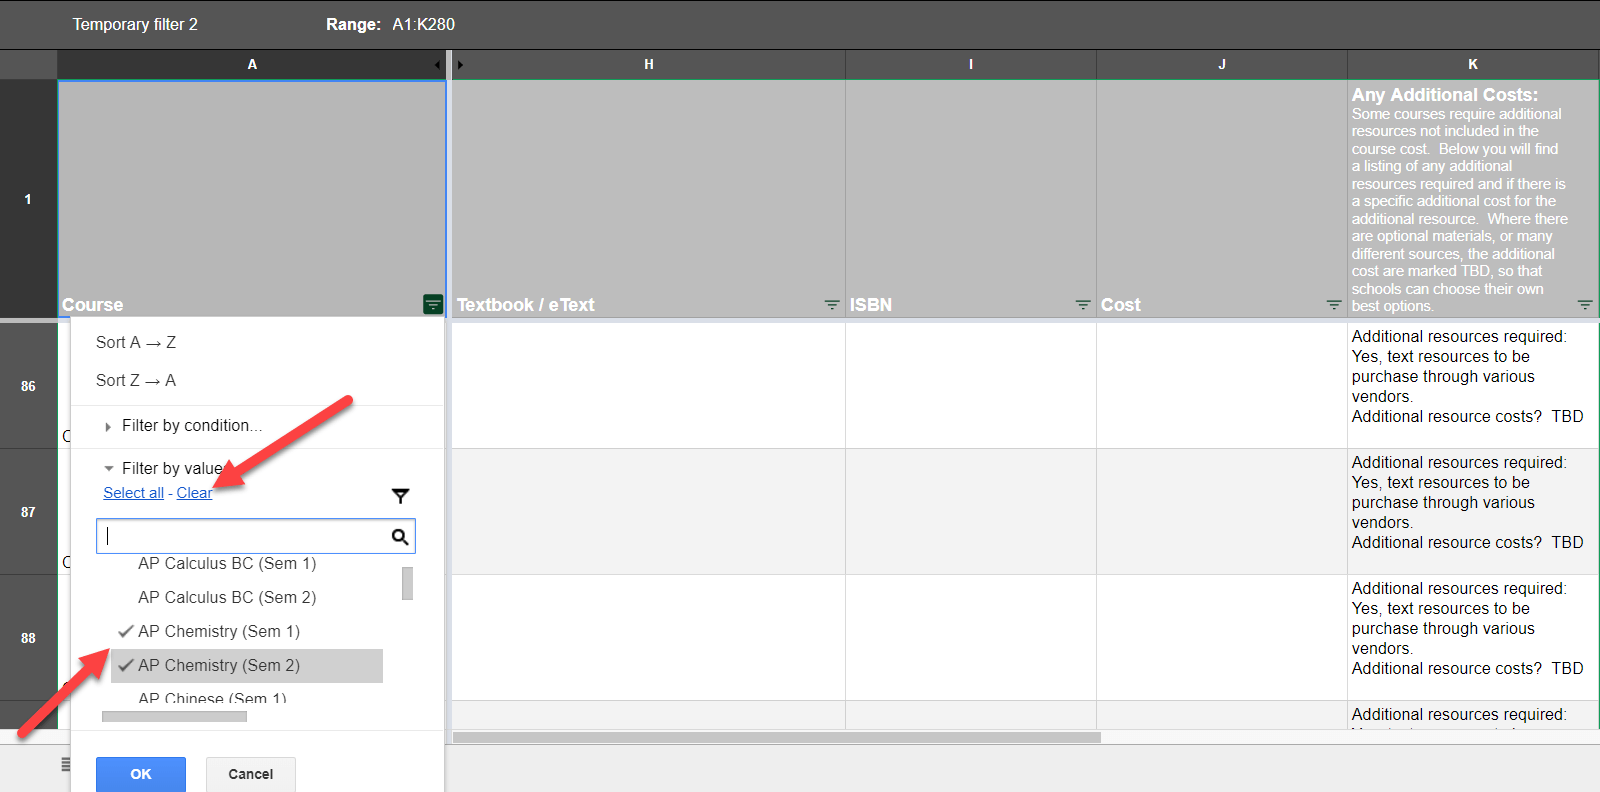 The Course List Summary of Technical & Software Requirements, Textbooks, & Additional Costs Google Sheet is showing the expanded filtered Course column menu. Arrows point to the Clear link and to the checkmarks next to the course names.